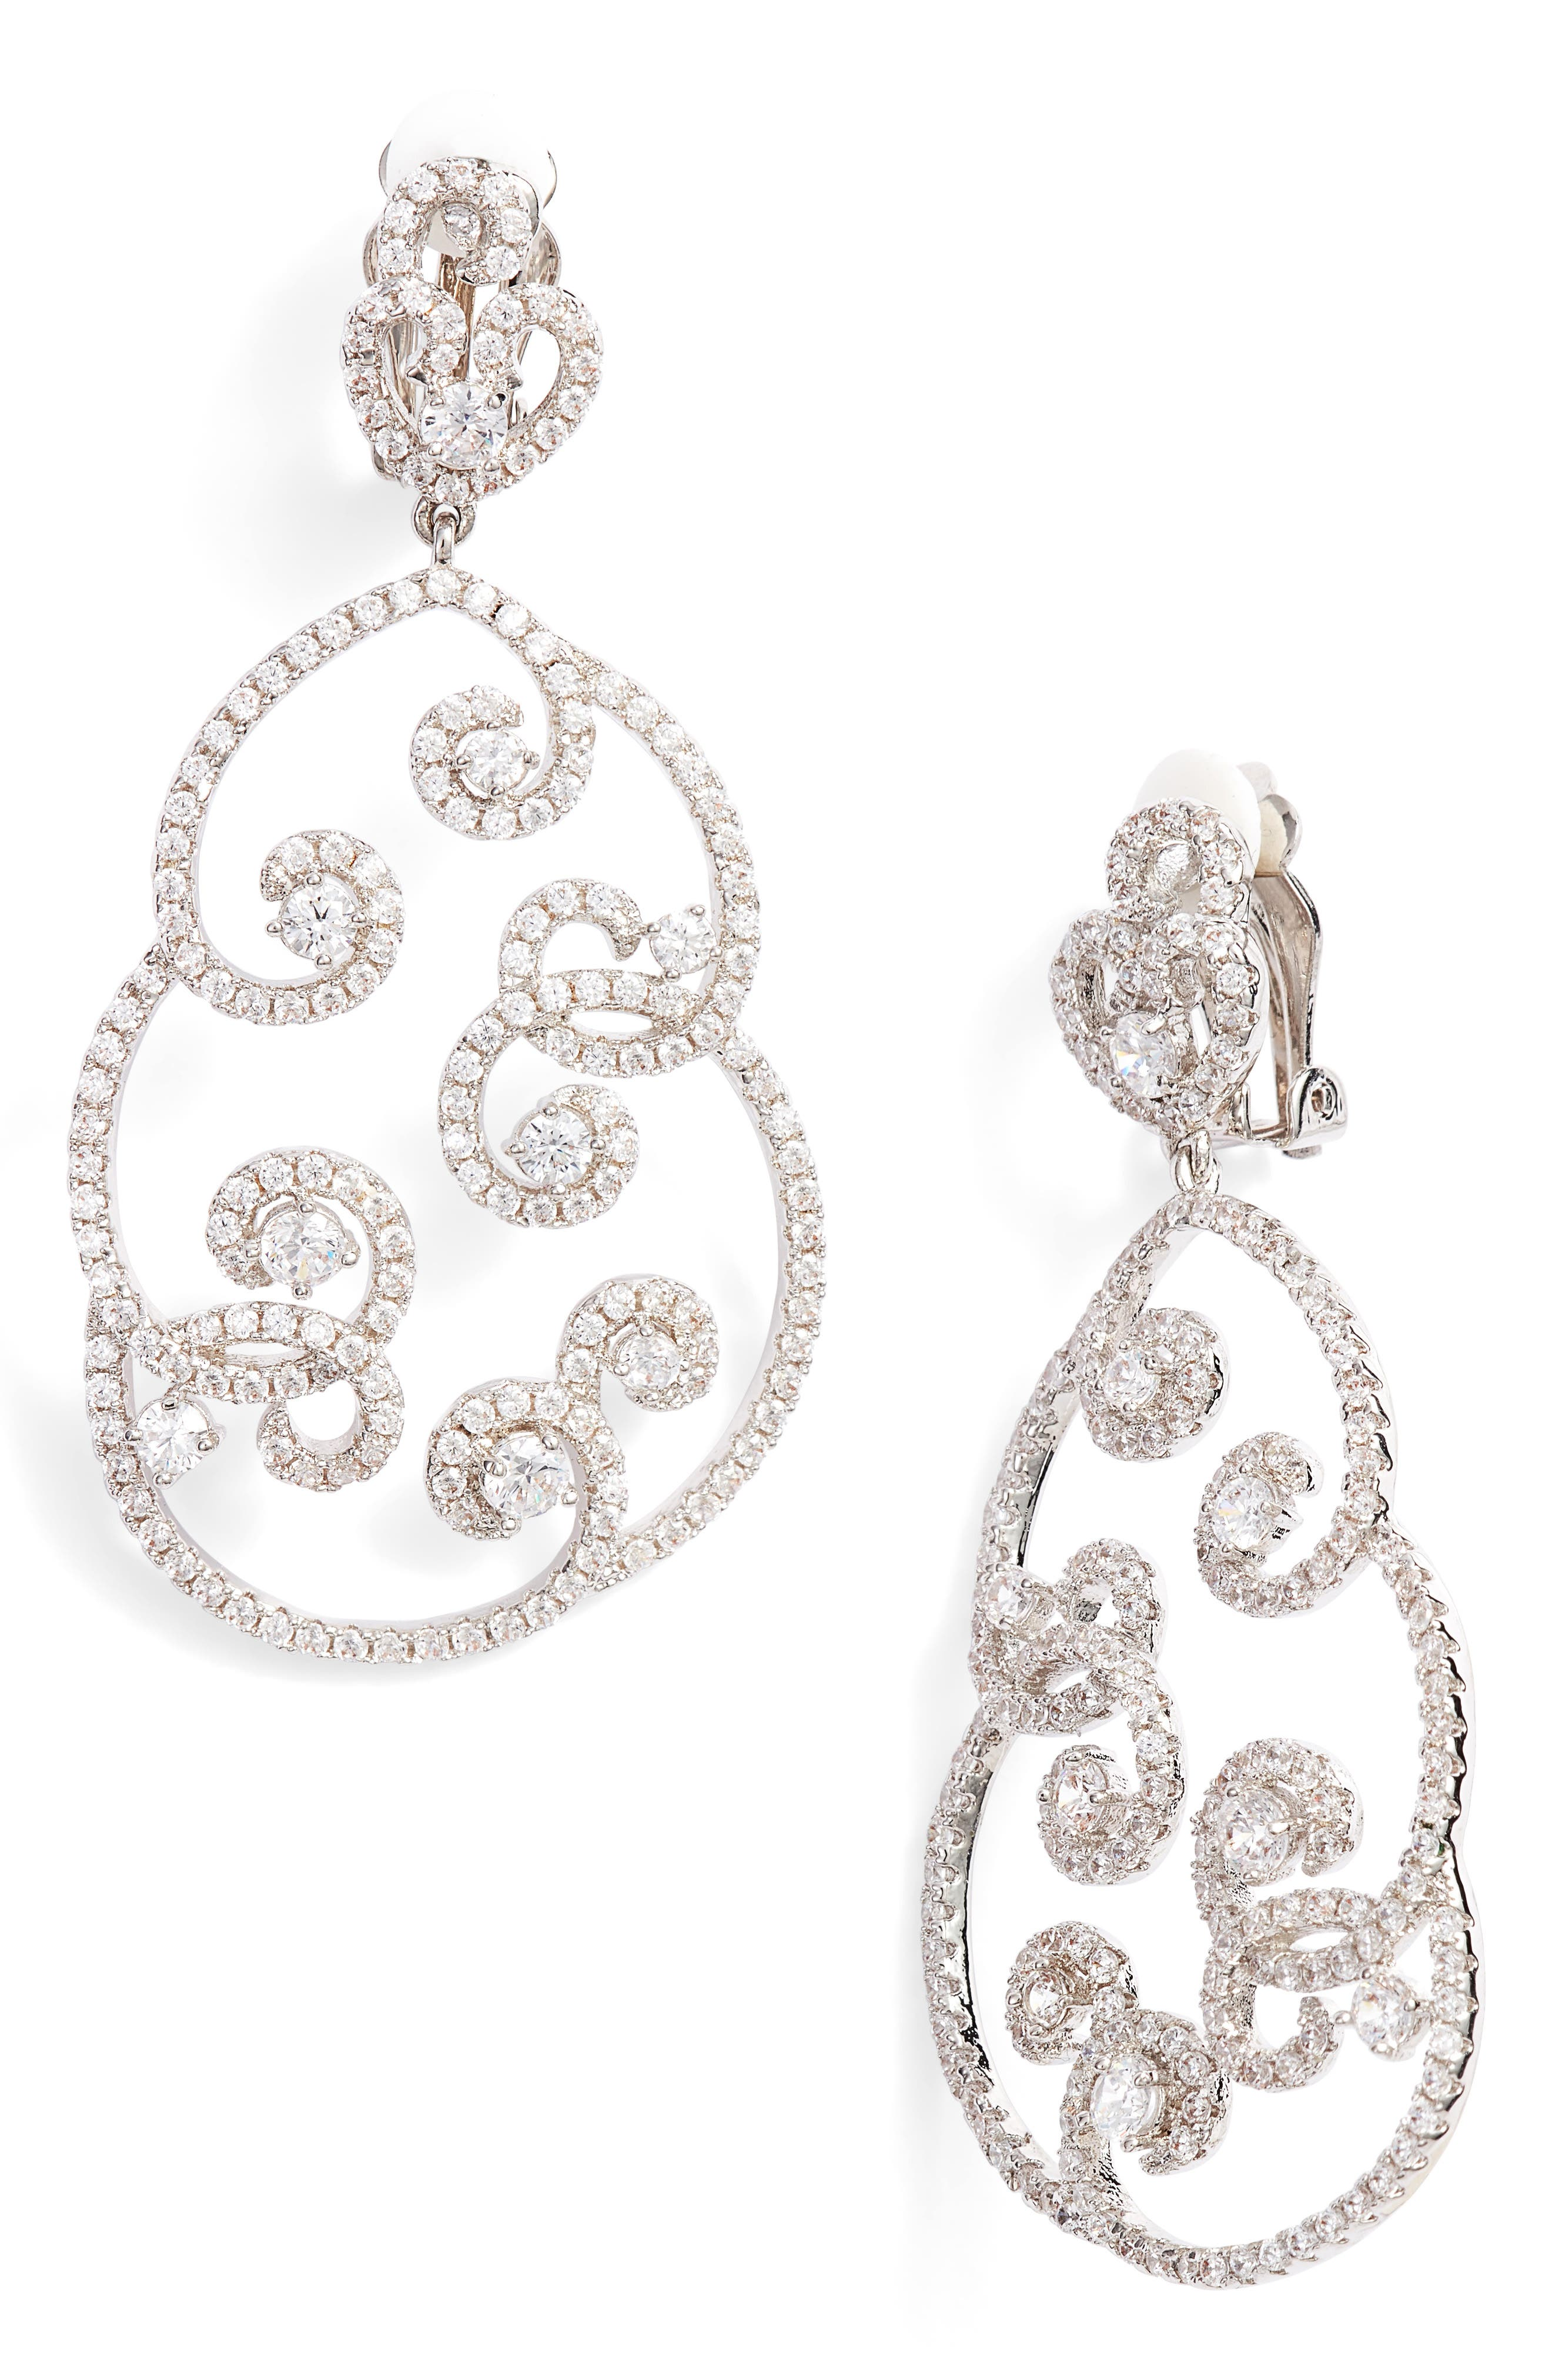 Swirl Pavé Clip-On Drop Earrings,                             Main thumbnail 1, color,                             SILVER/ WHITE CZ